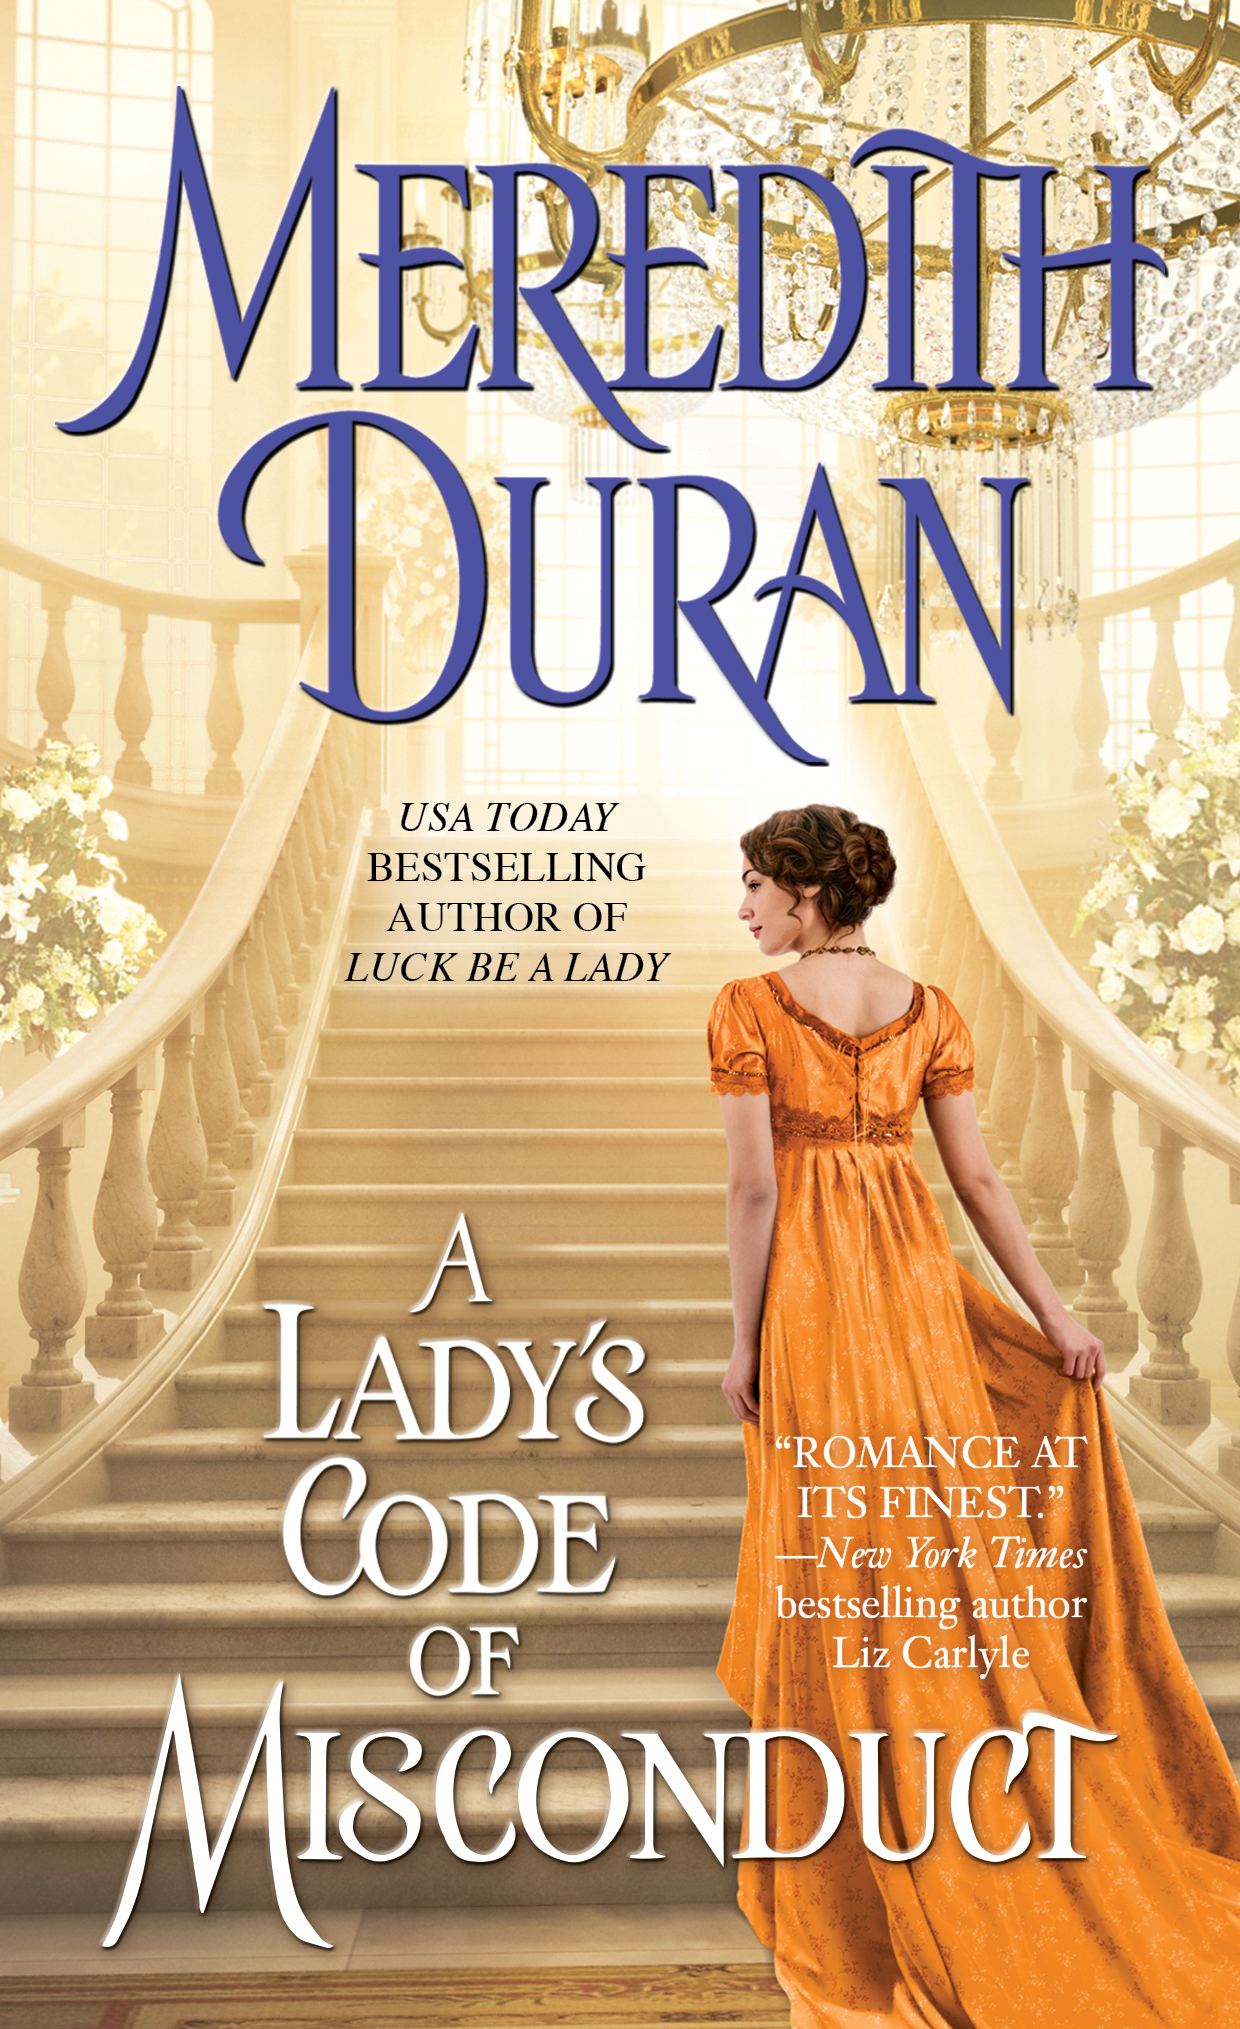 #Giveaway: A Lady's Code of Misconduct by Meredith Duran